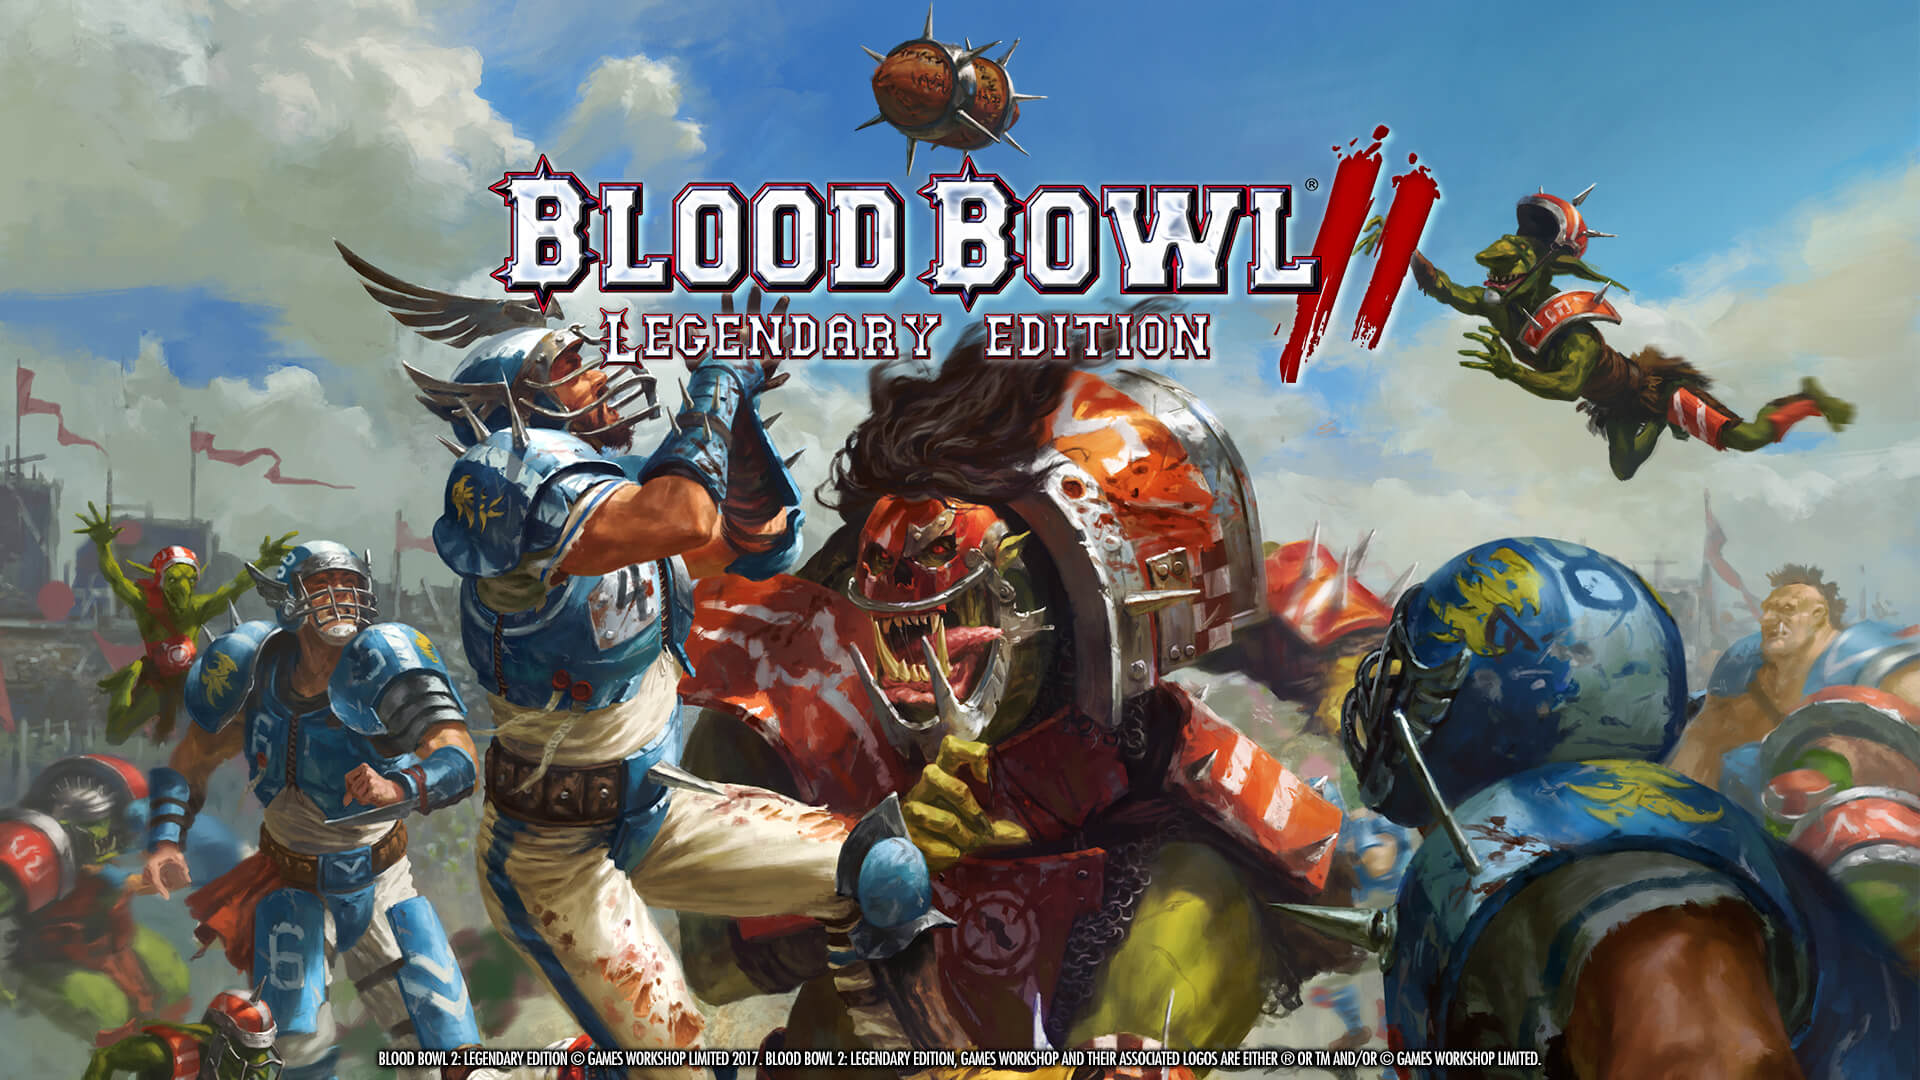 Blood Bowl 2 : Legendary Edition